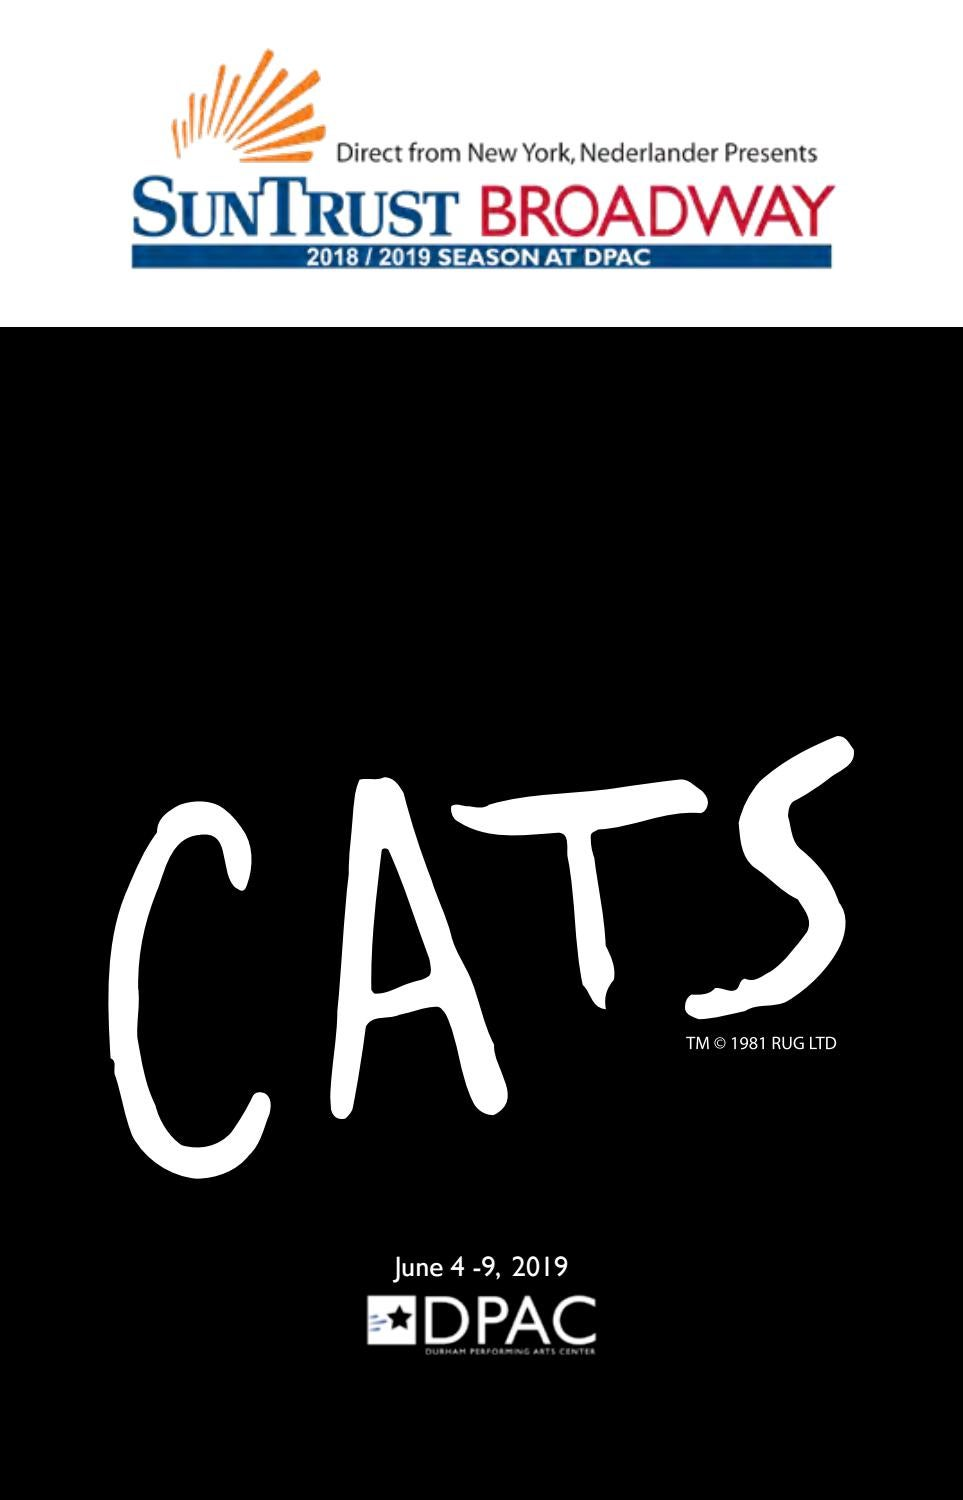 Cats Playbill By Dpac Issuu